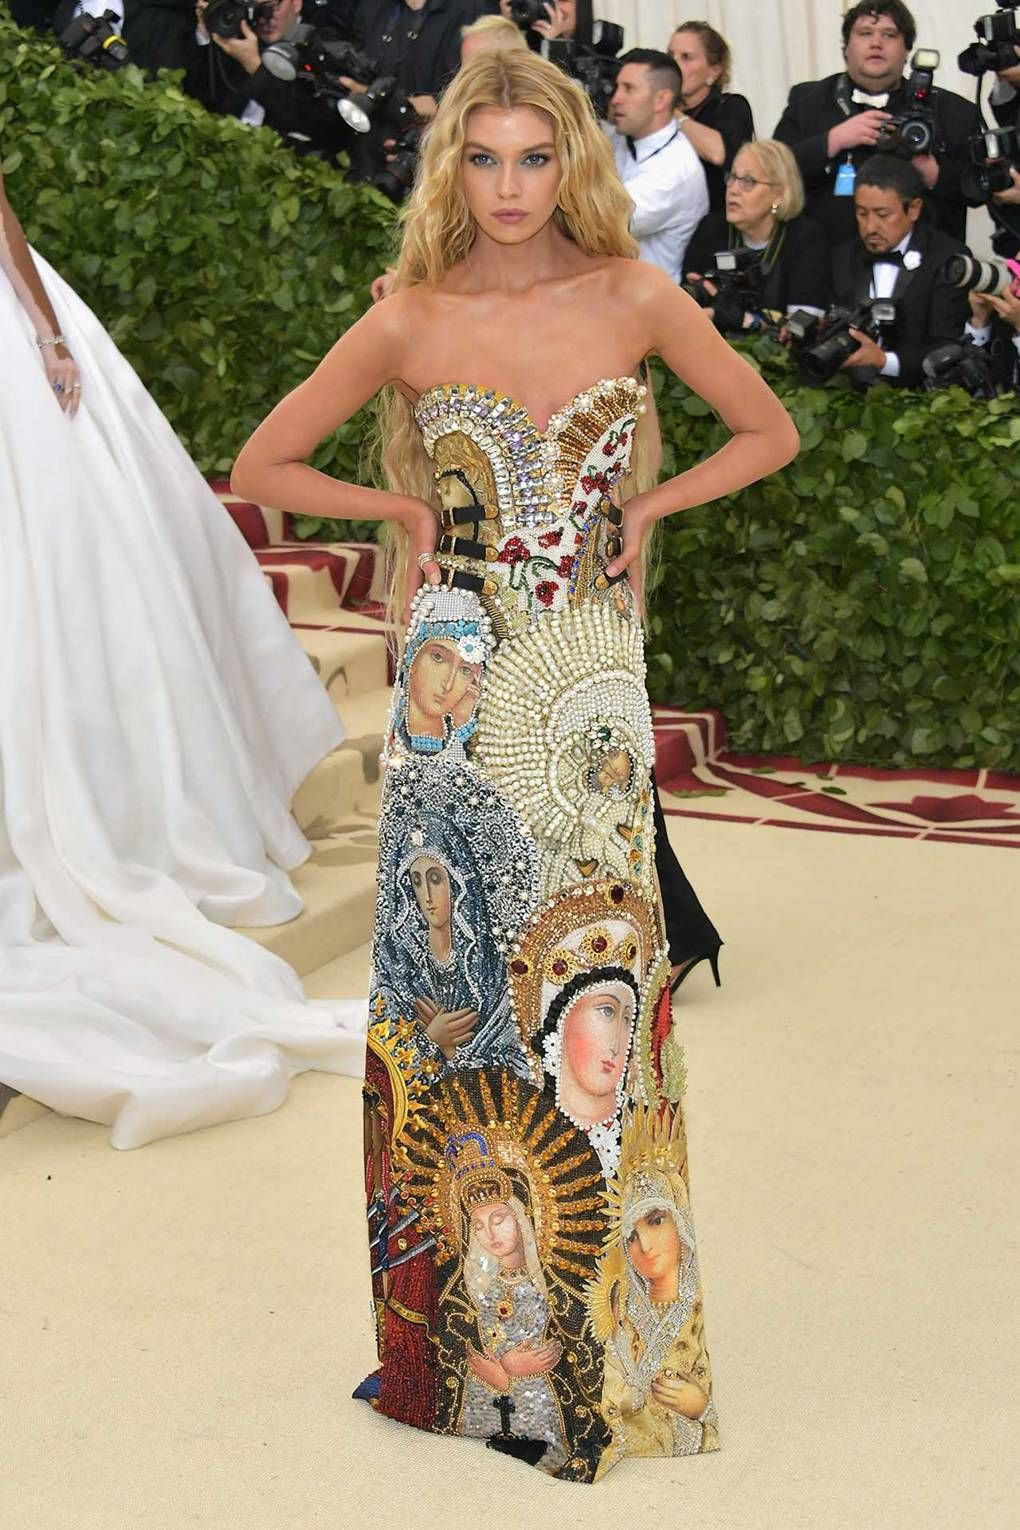 Stella Maxwell Wearing Moschino At The Met Ball In